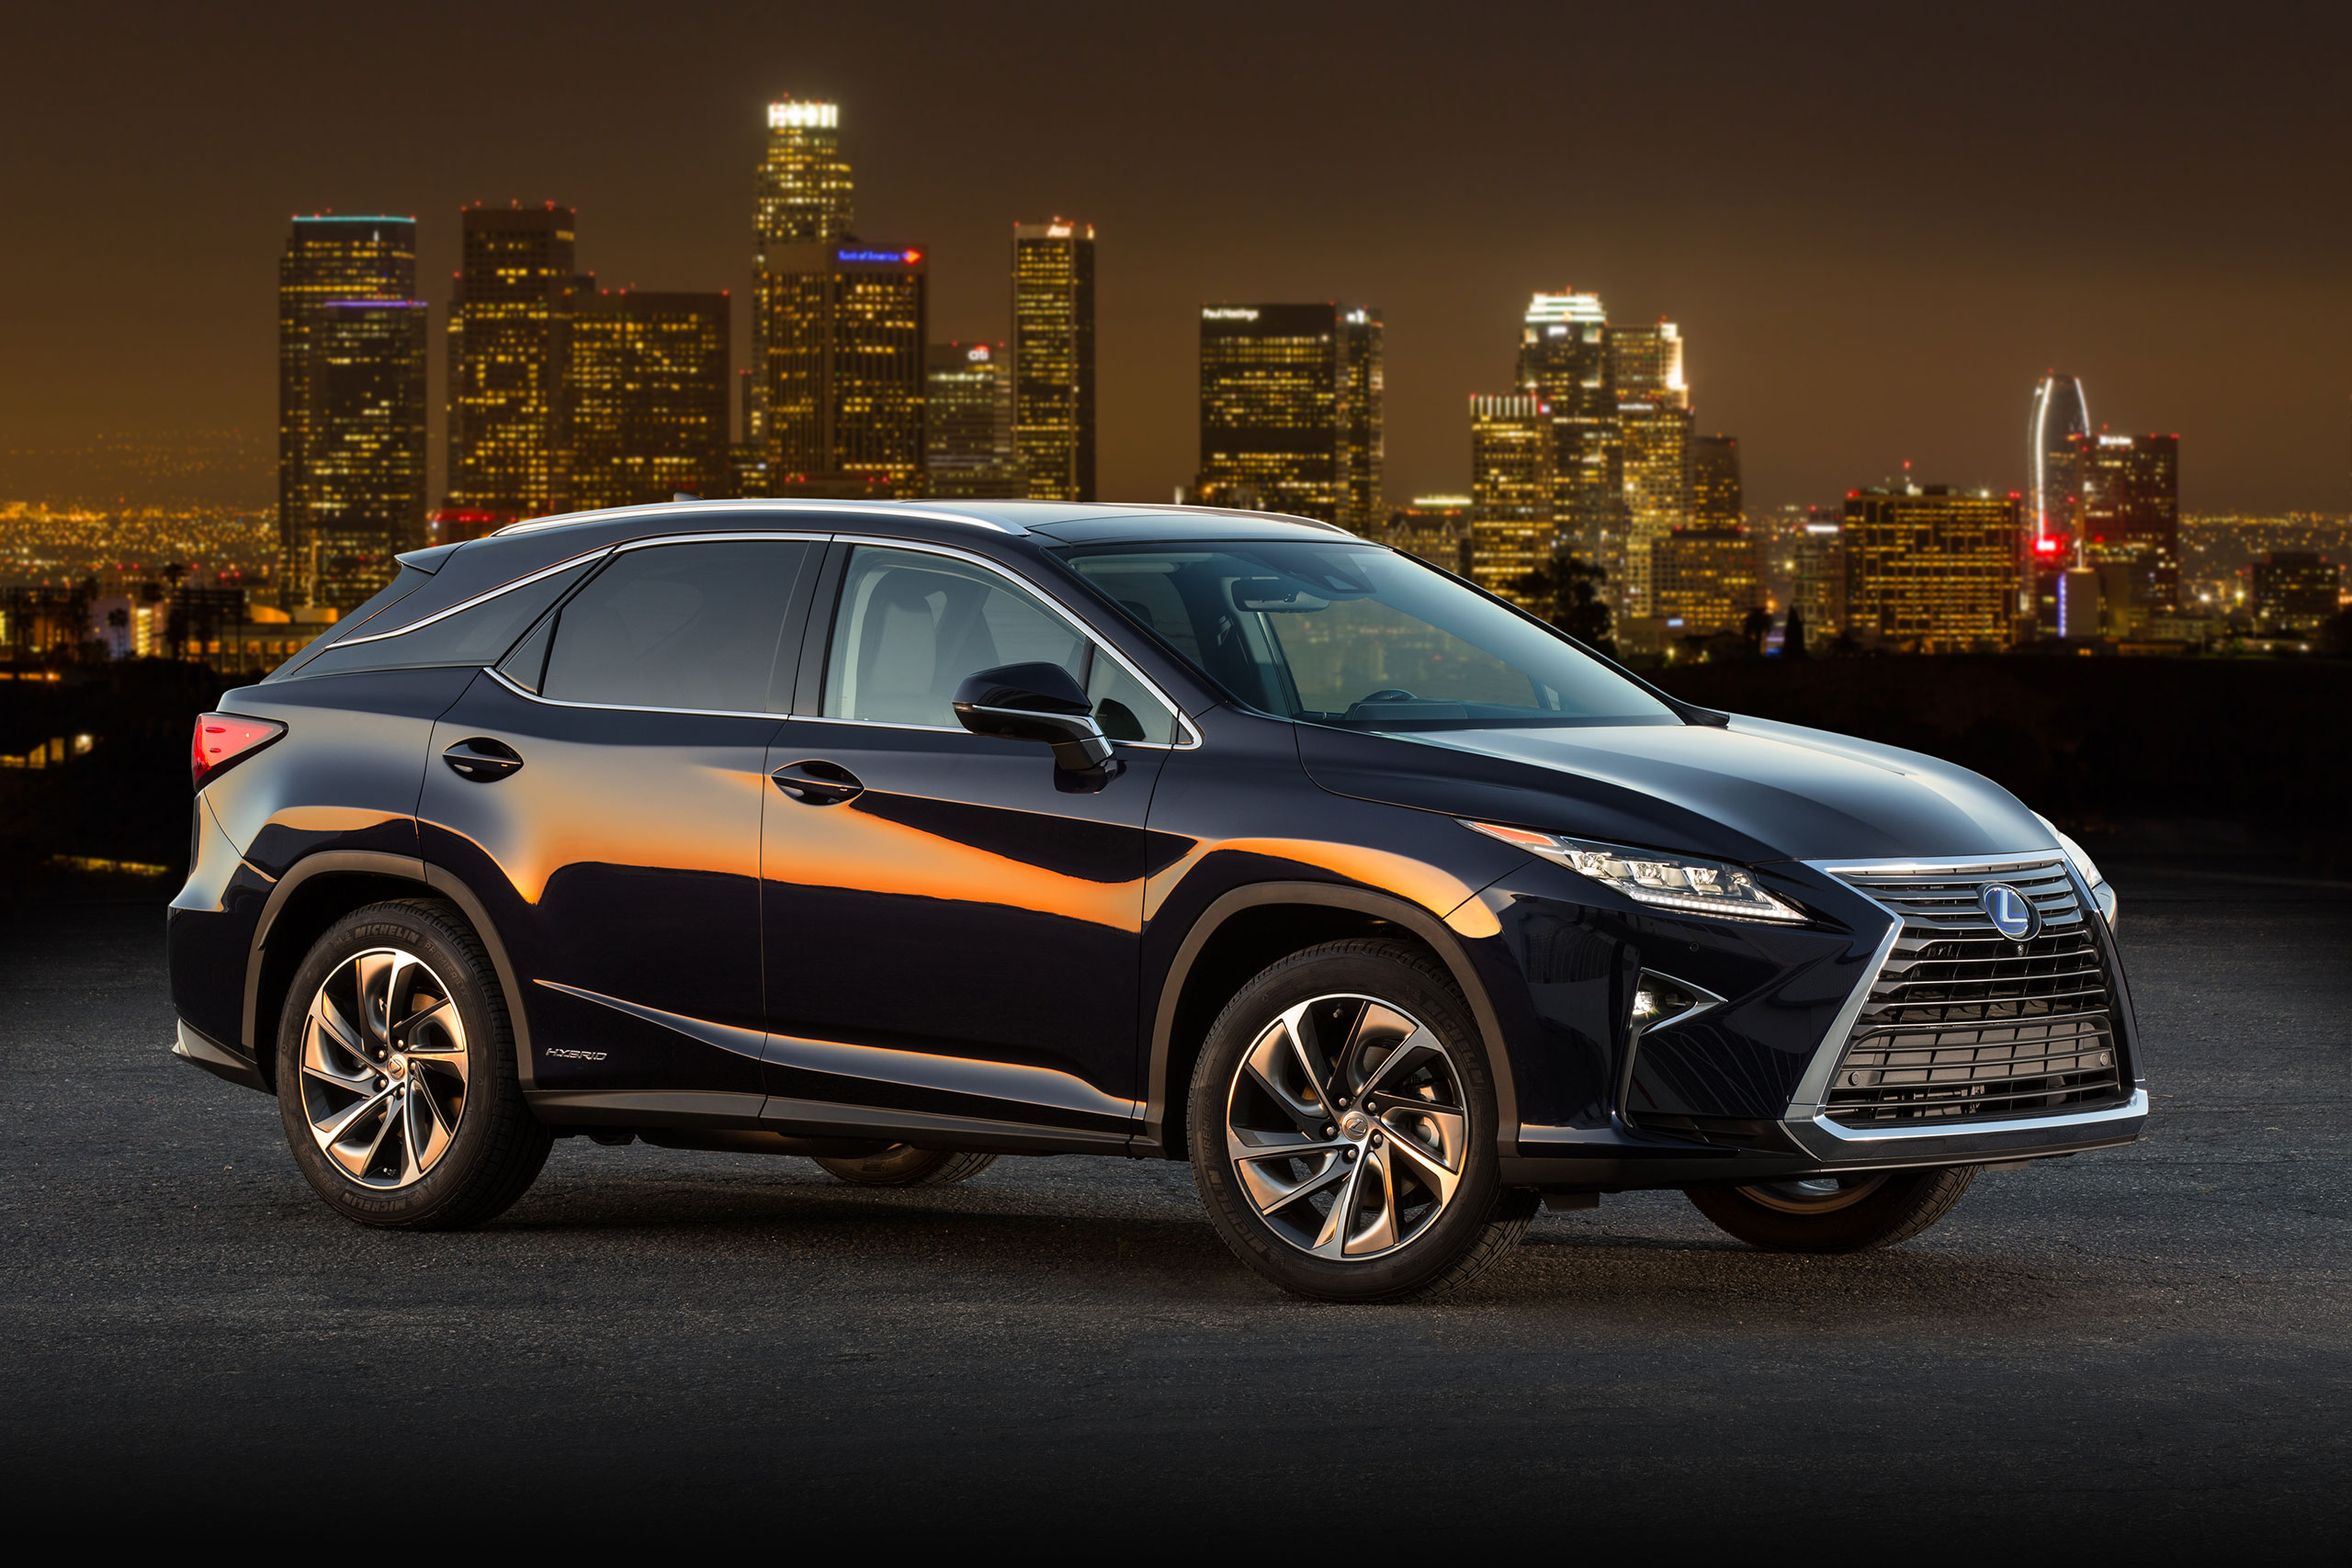 lease awd groovecar lexus research composite rx suv large obsidian